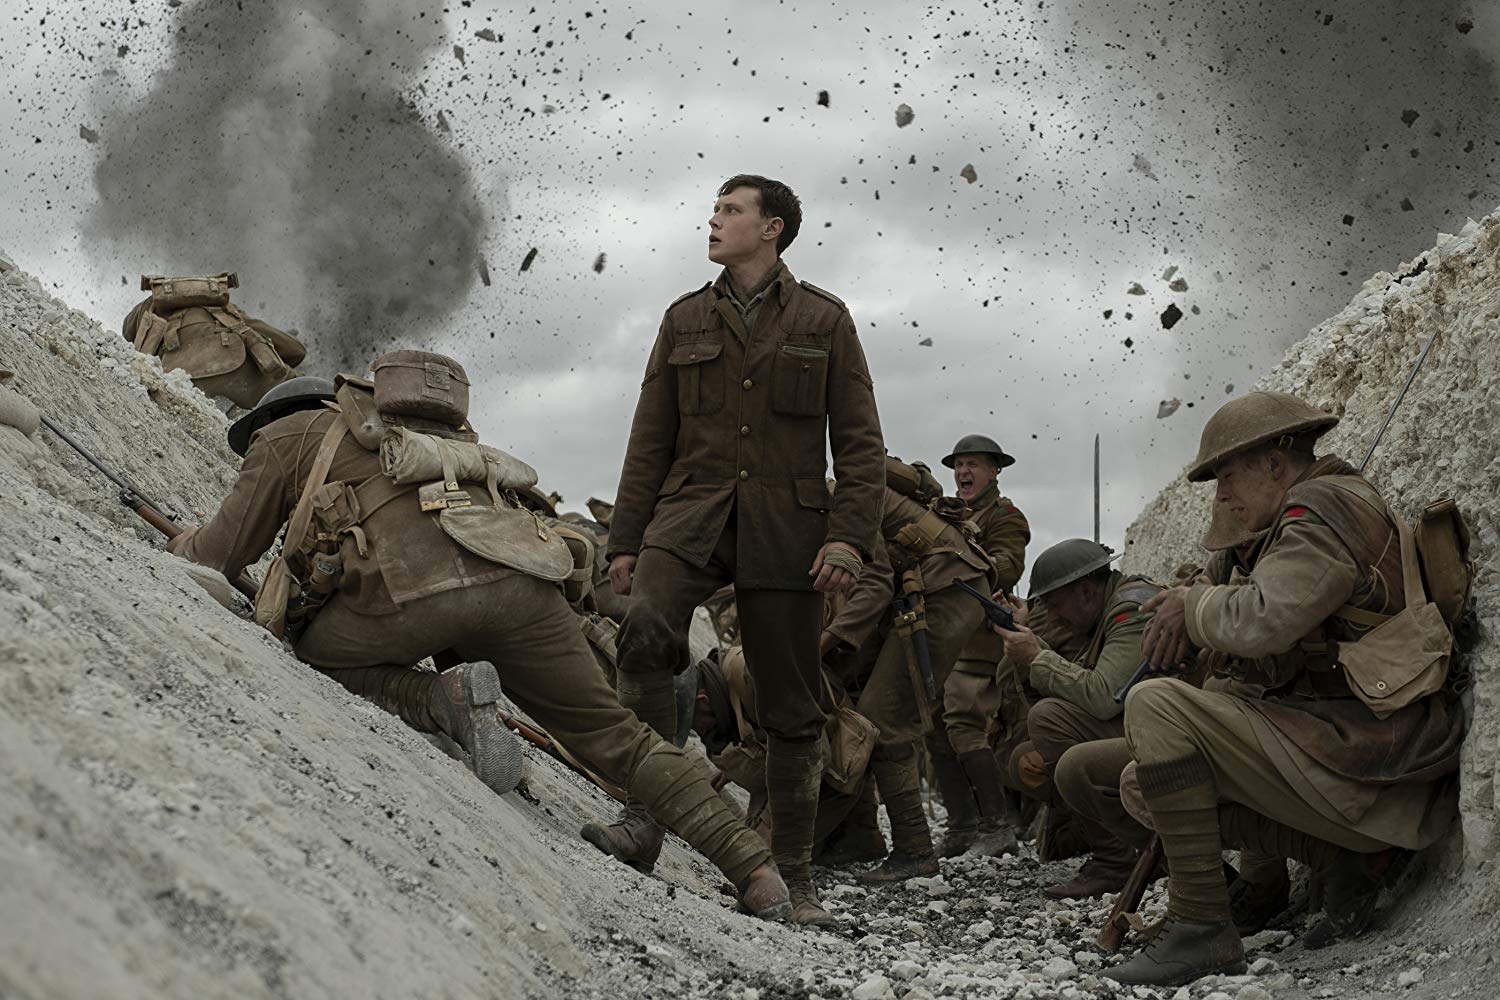 1917' Review: Sam Mendes Crafts a Stirring Single